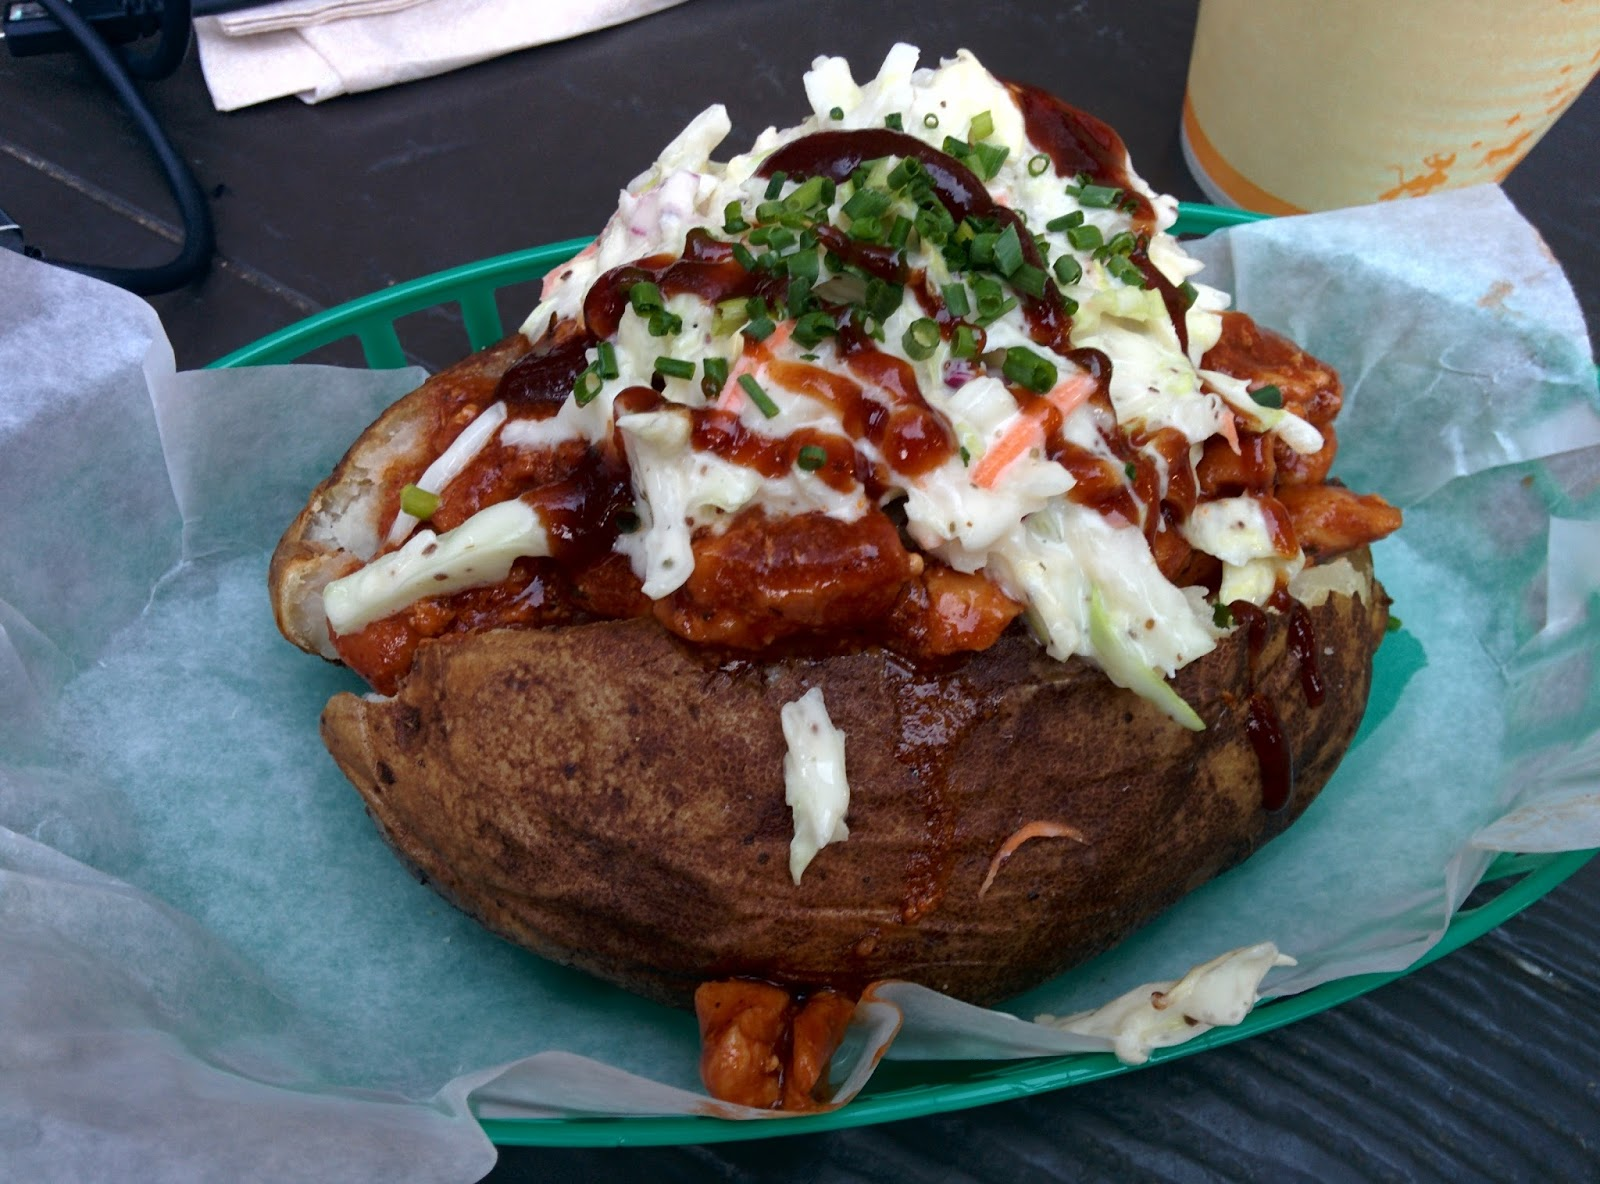 Disney BBQ Chicken and Slaw Baked Potato